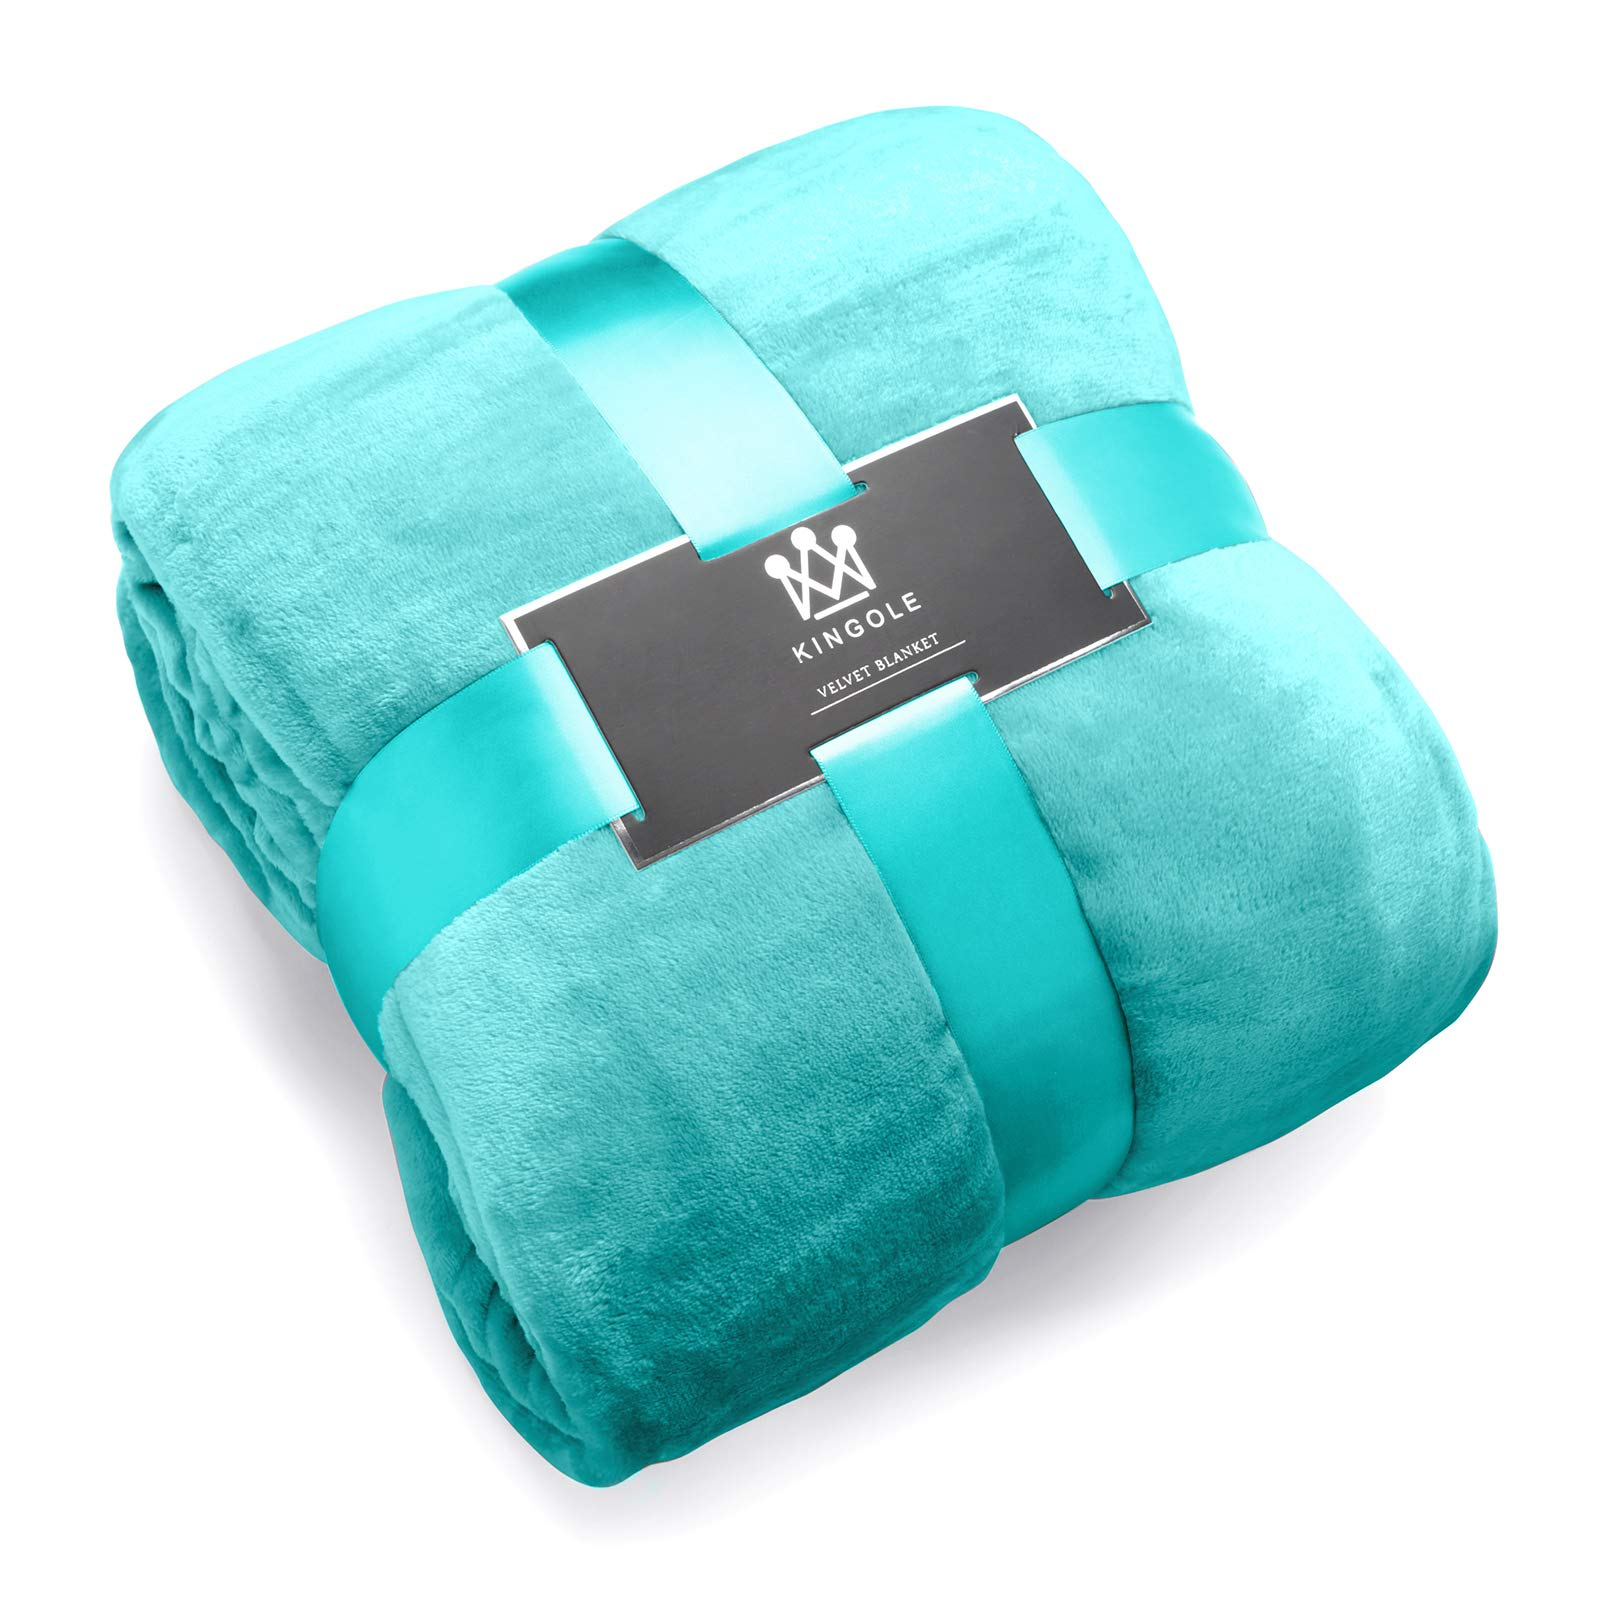 Kingole Flannel Fleece Microfiber Throw Blanket, Luxury Teal Queen Size Lightweight Cozy Couch Bed Super Soft and Warm Plush Solid Color 350GSM (90 x 90 inches)